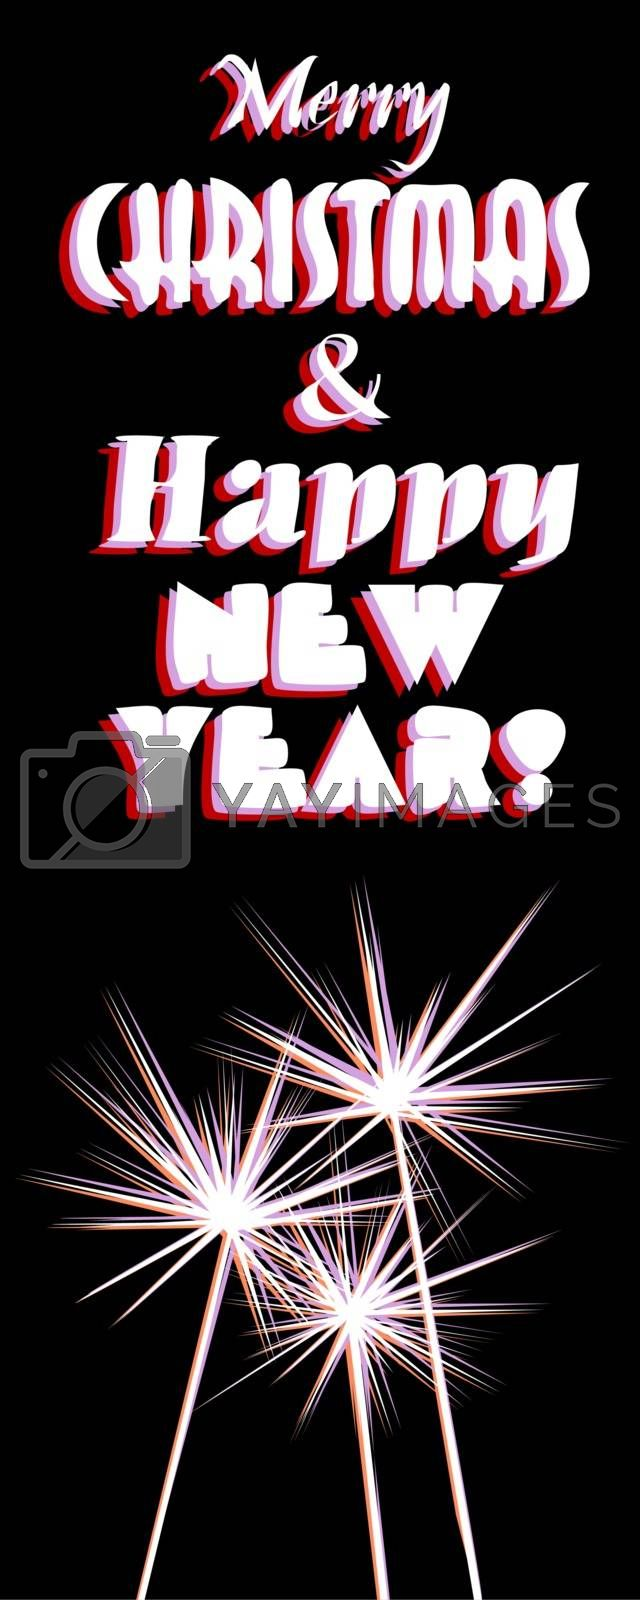 Vertical greeting card with text 'Merry Chritmas Happy New Year' with sparklers